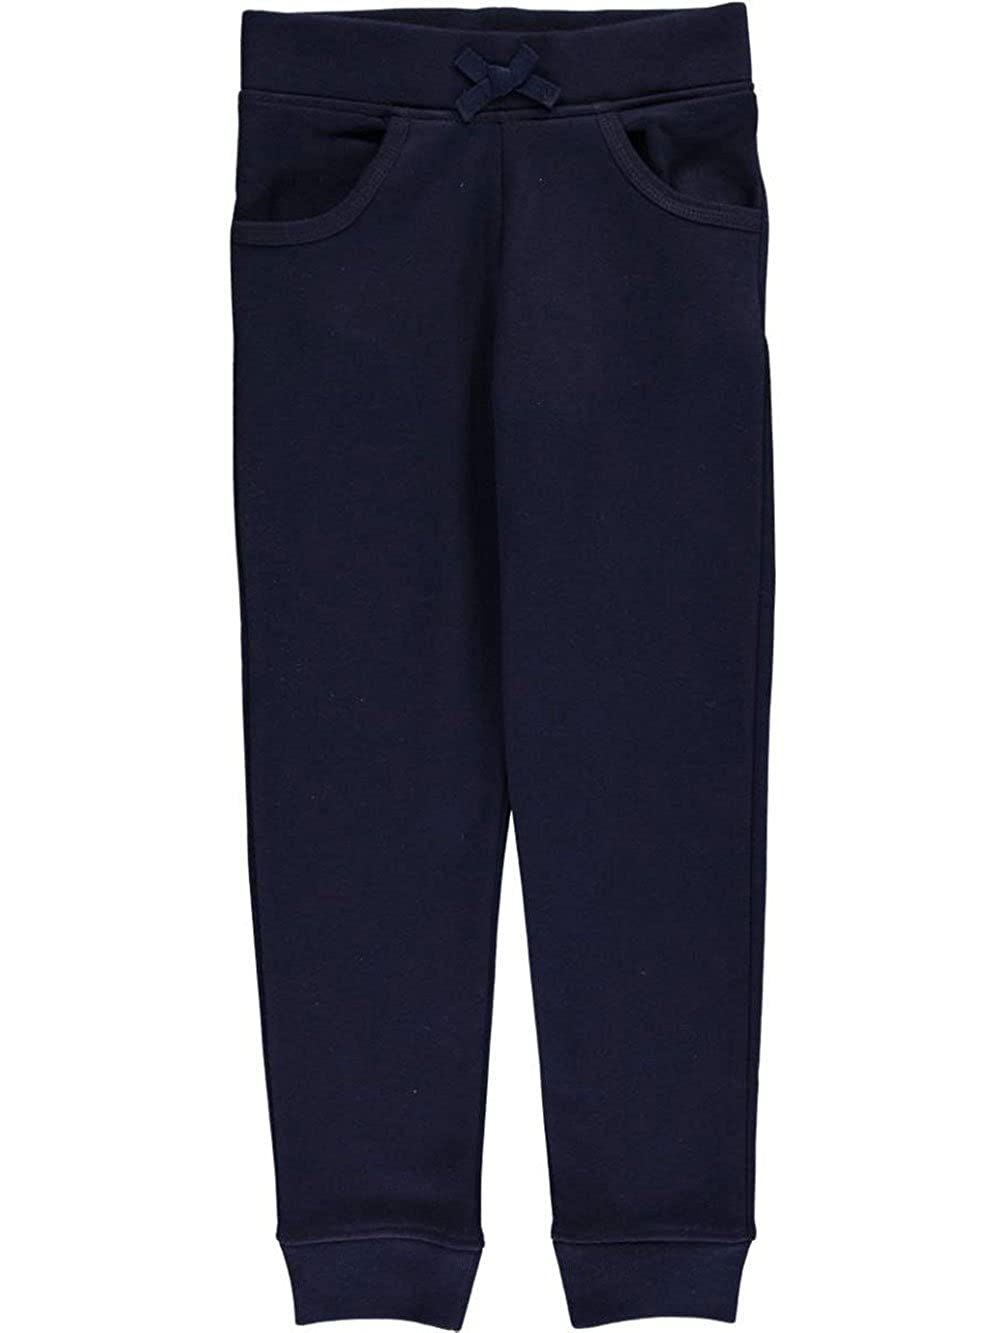 French Toast Big Girls' Fleece Joggers - Navy, 7-8